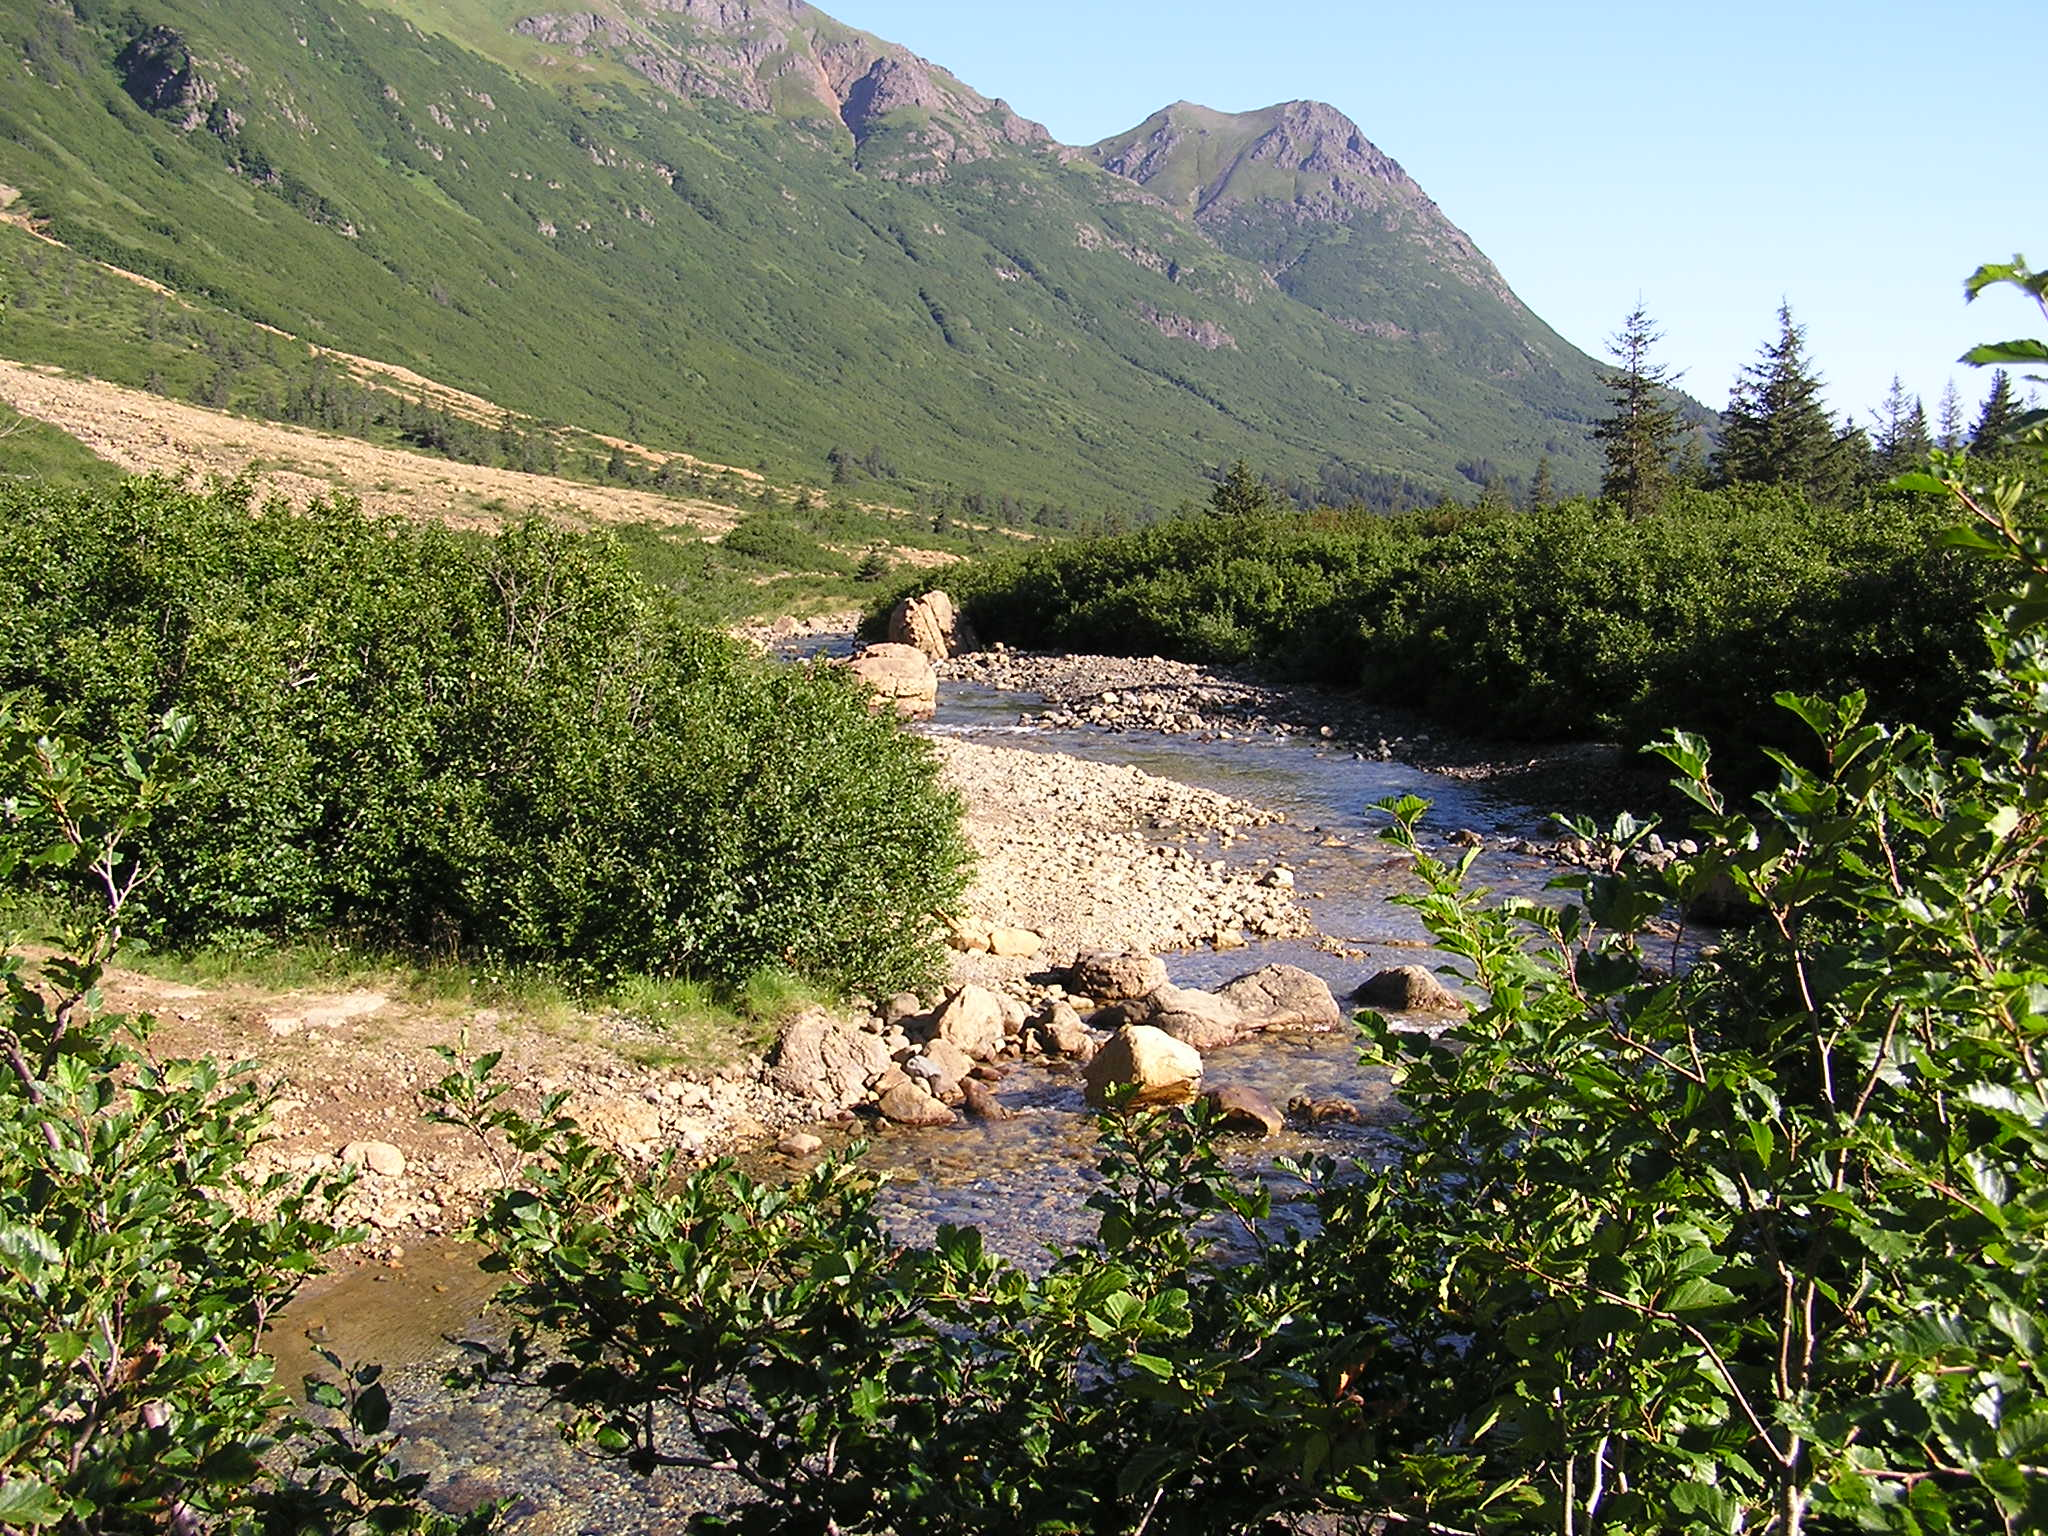 The upper Windy River